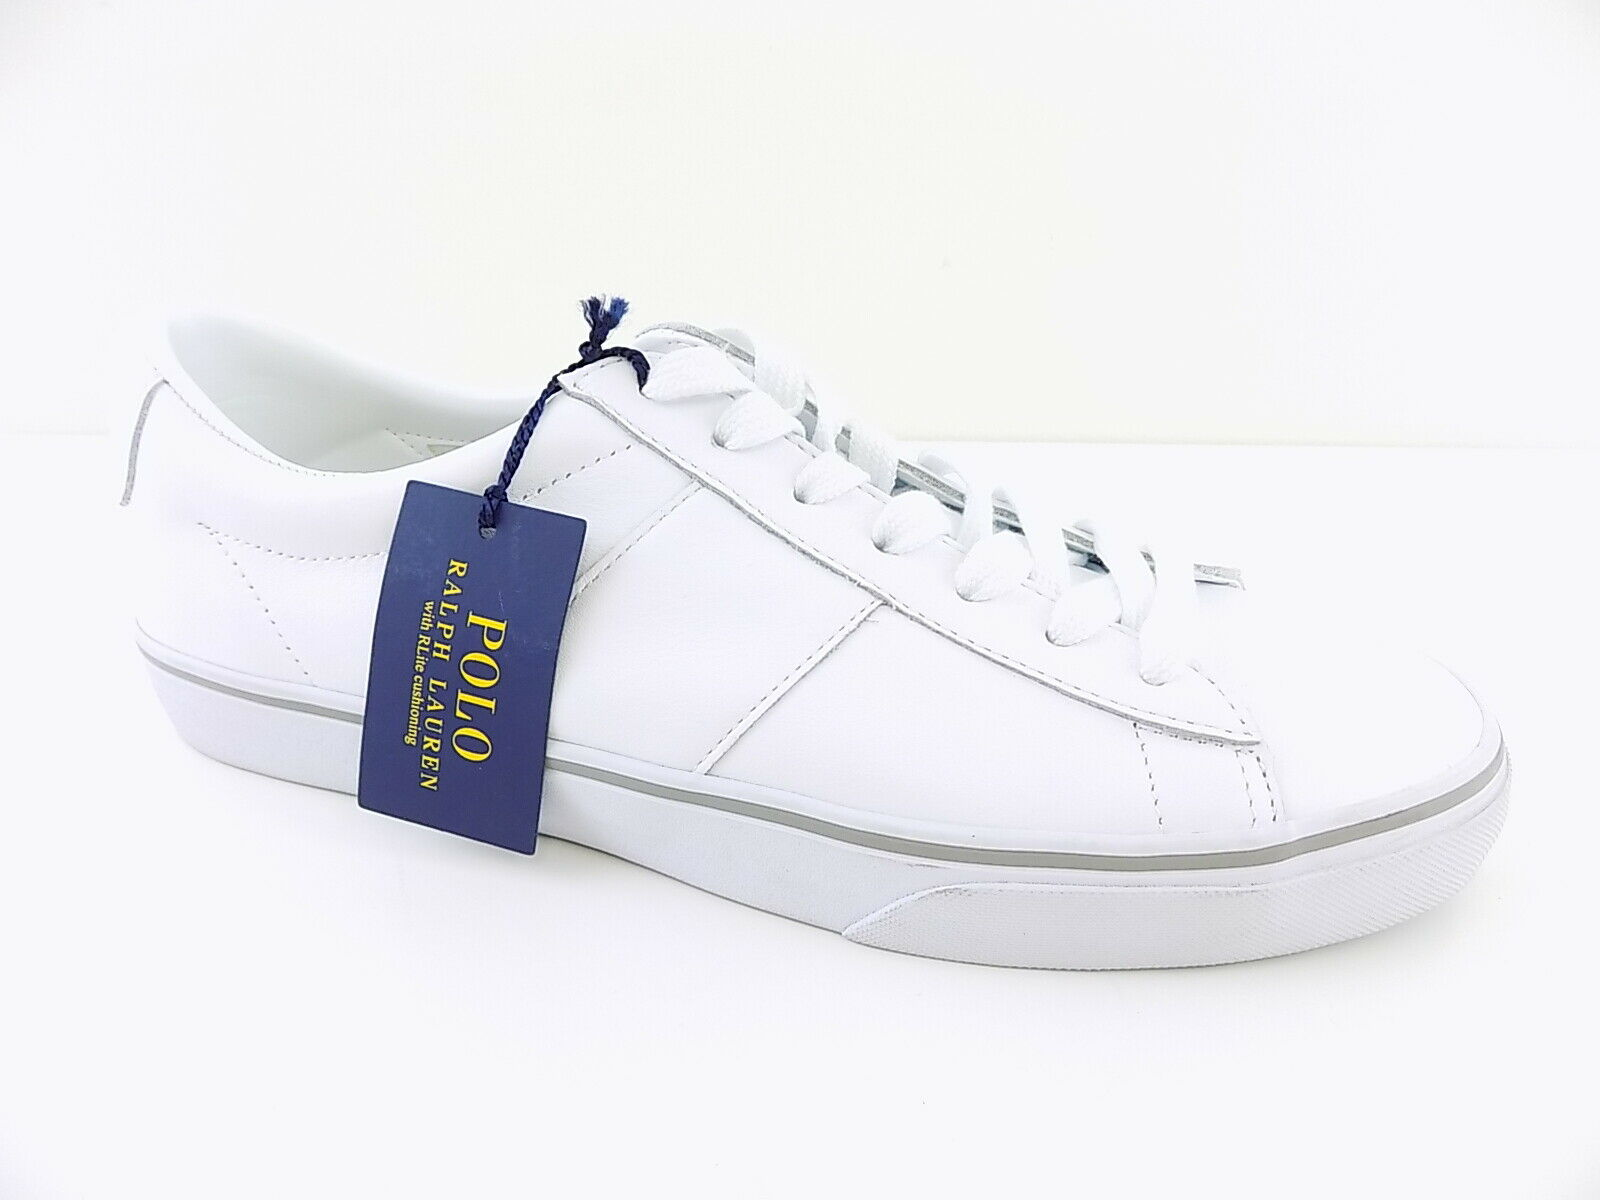 Polo Ralph Lauren   SAYER White MEN'S Size 10.5D Fashion Sneakers  shoes D10